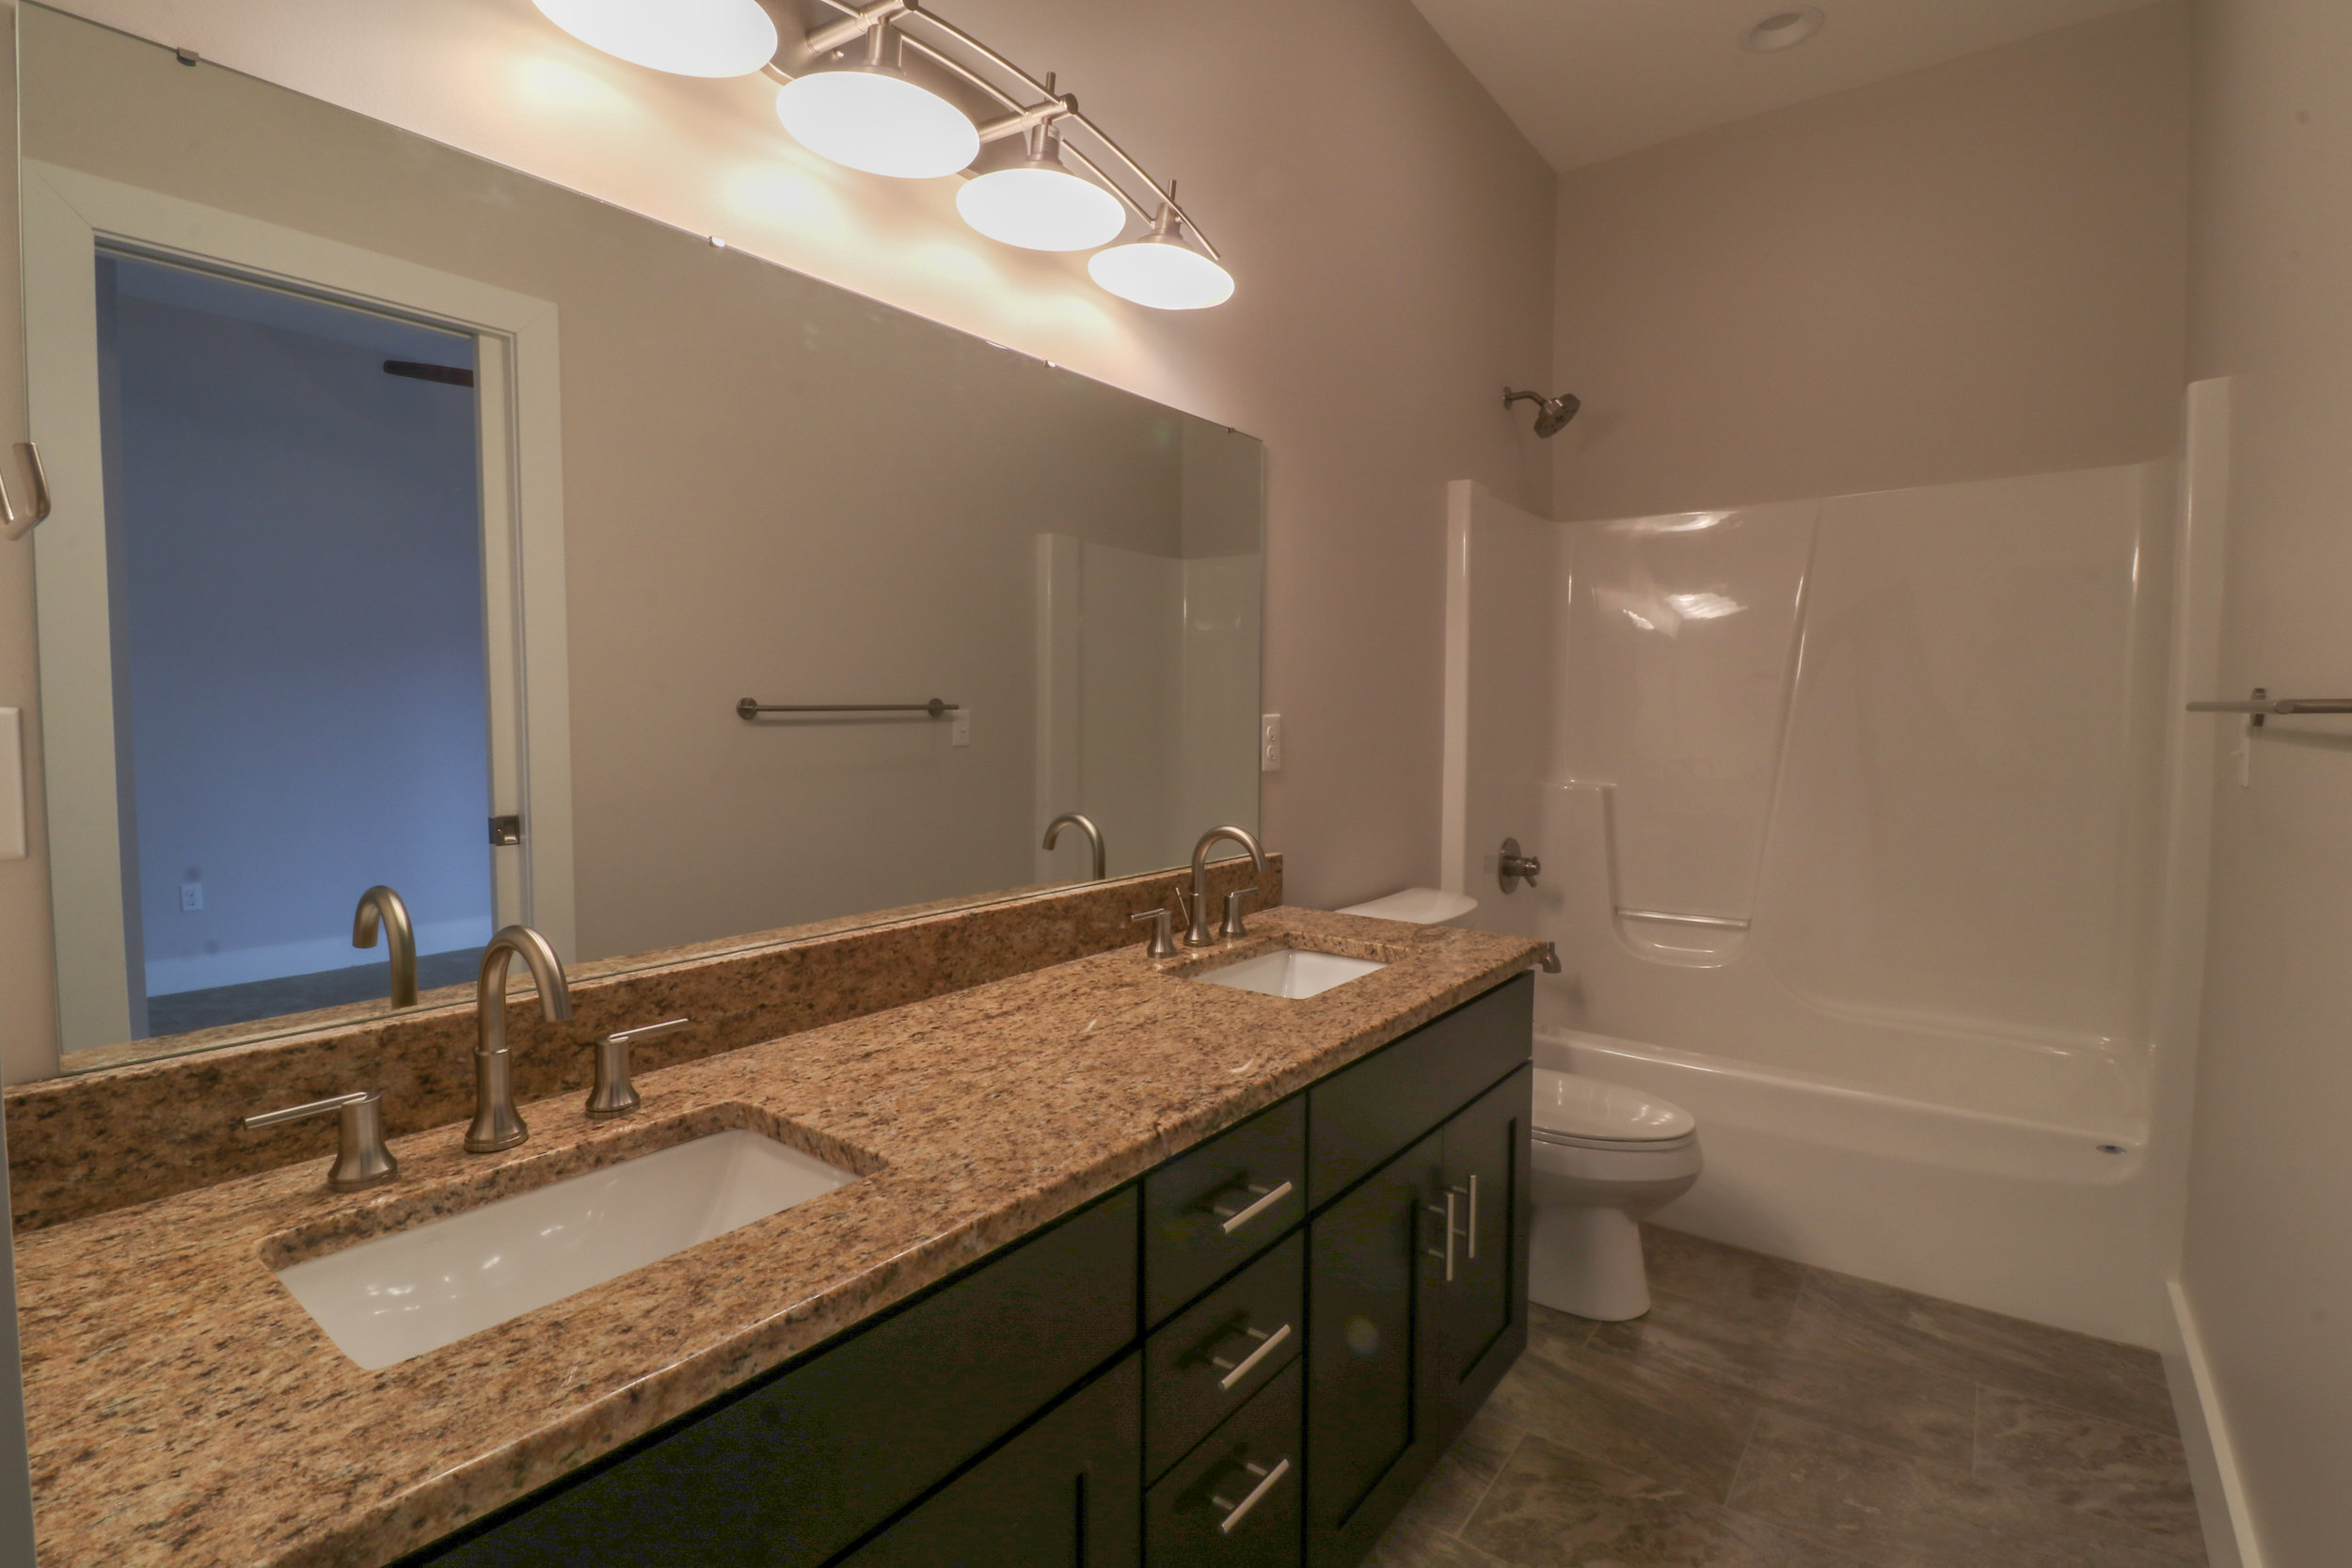 gosnell_builders_home_for_sale_ridgeview_valley26.jpg